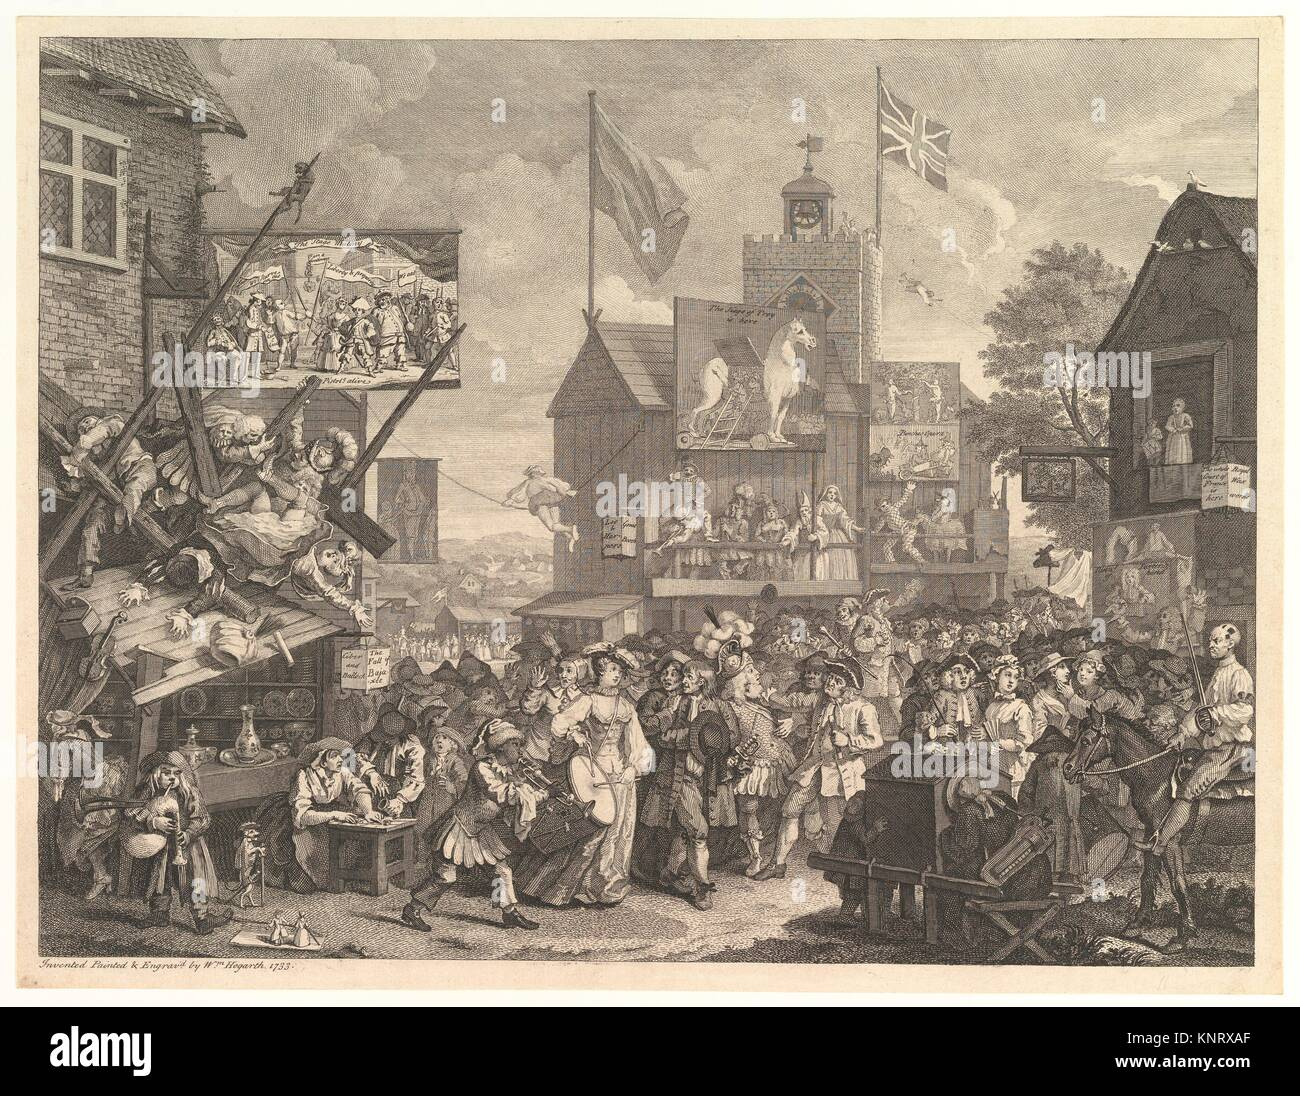 Artist: William Hogarth (British, London 1697-1764 London); Date: 1734;  Medium: Etching and engraving; only state; Dimensions: sheet: